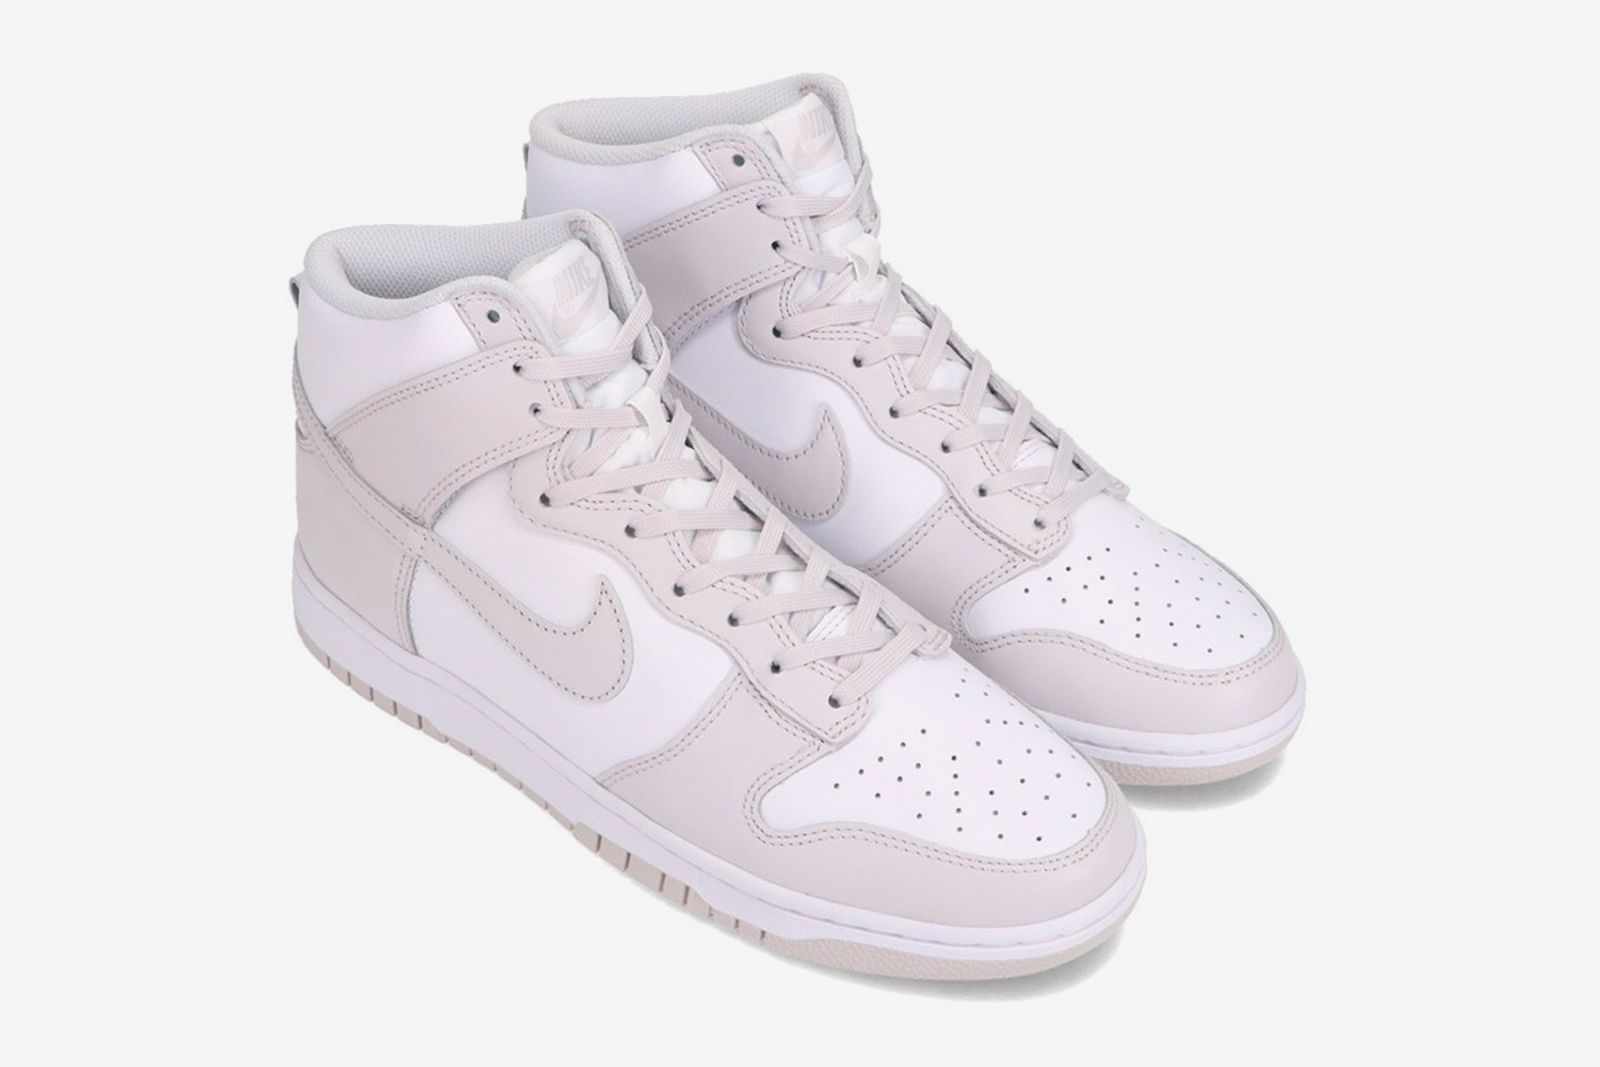 nike-dunks-january-2021-release-date-price-17